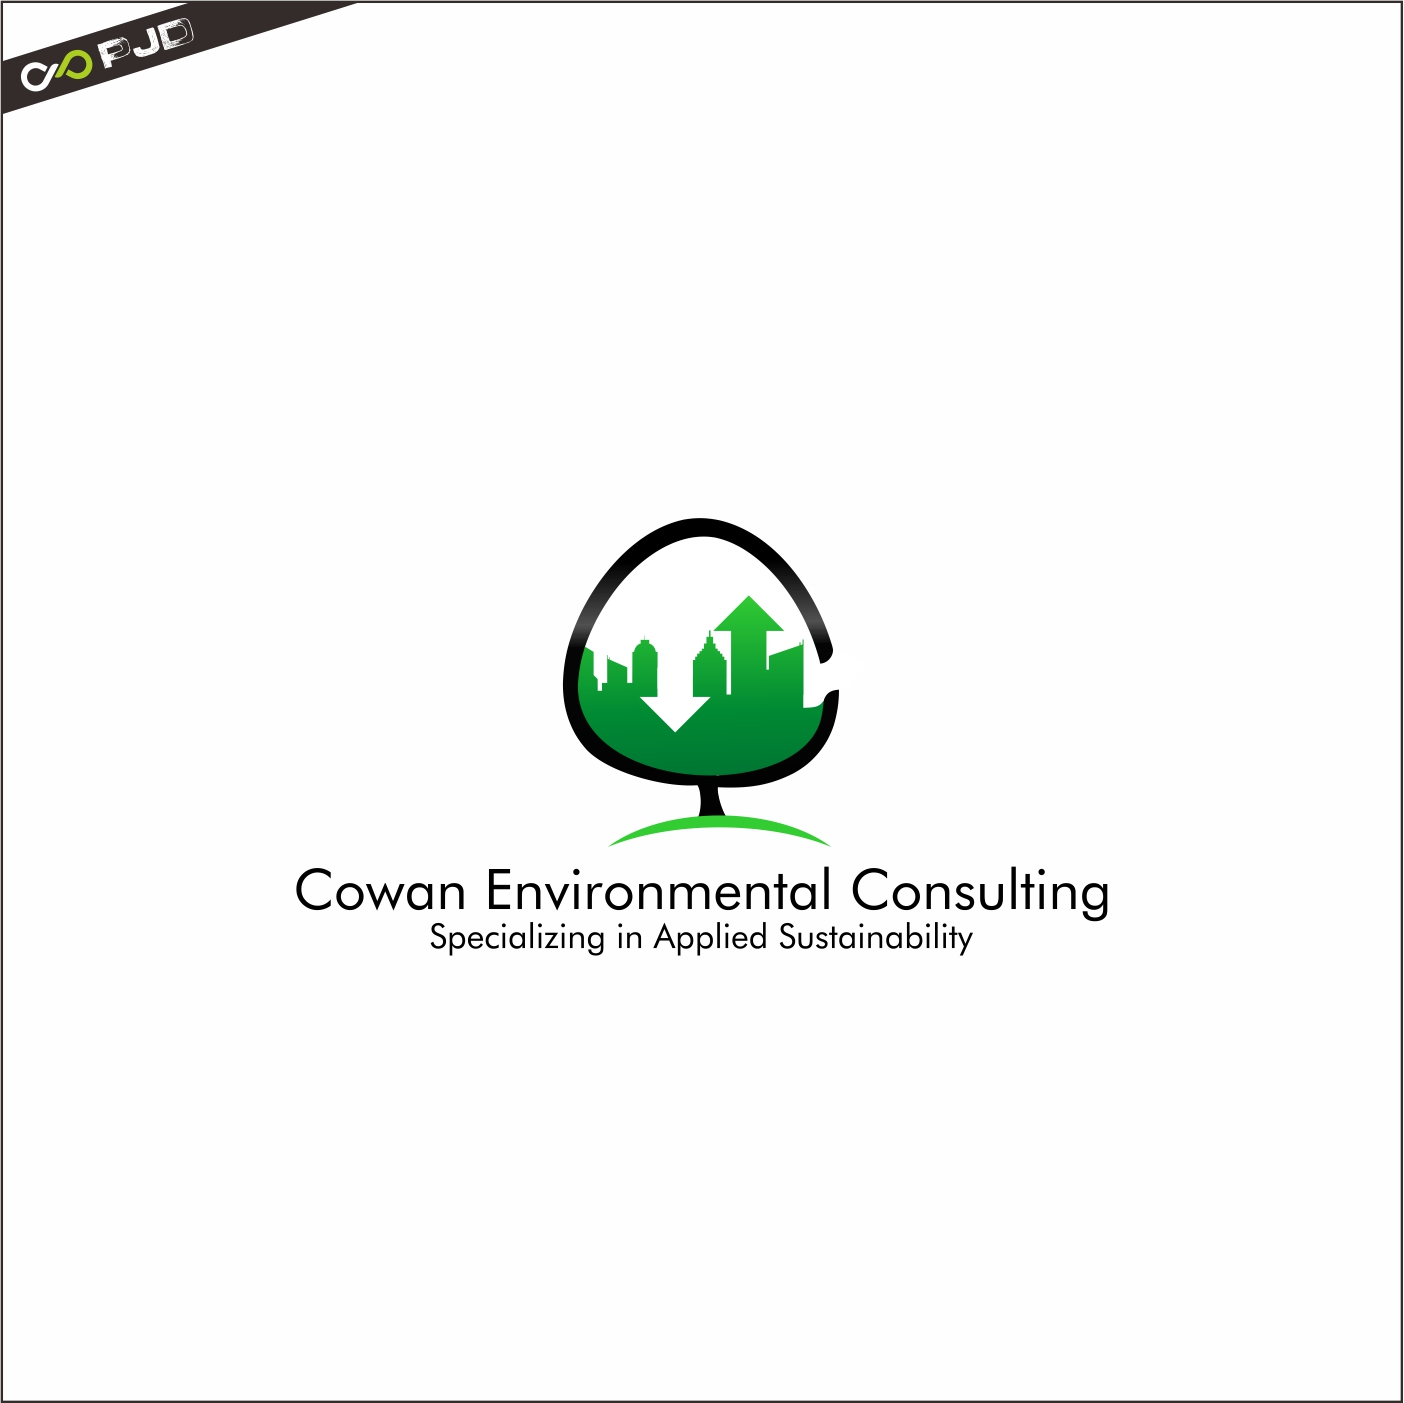 Logo Design by PJD - Entry No. 112 in the Logo Design Contest Fun Logo Design for Cowan Environmental Consulting.